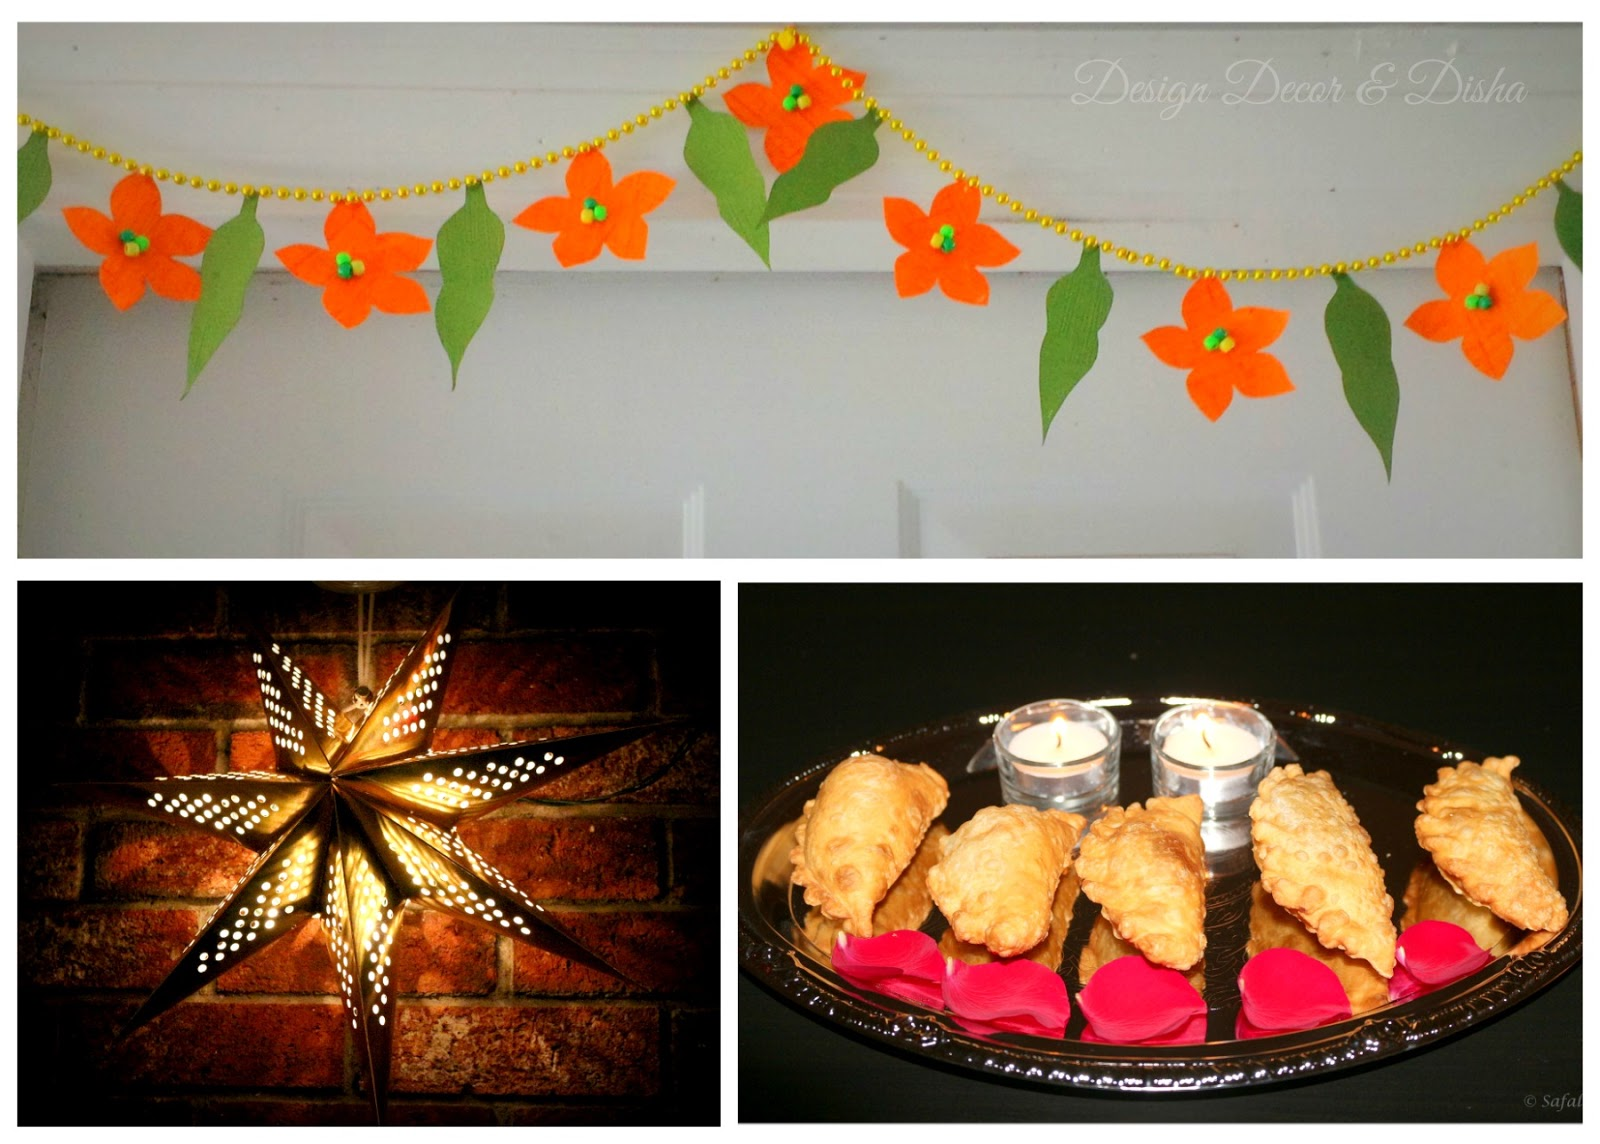 Design decor disha an indian design decor blog photo flashback diwali moments of 3d readers Home made decoration items for diwali